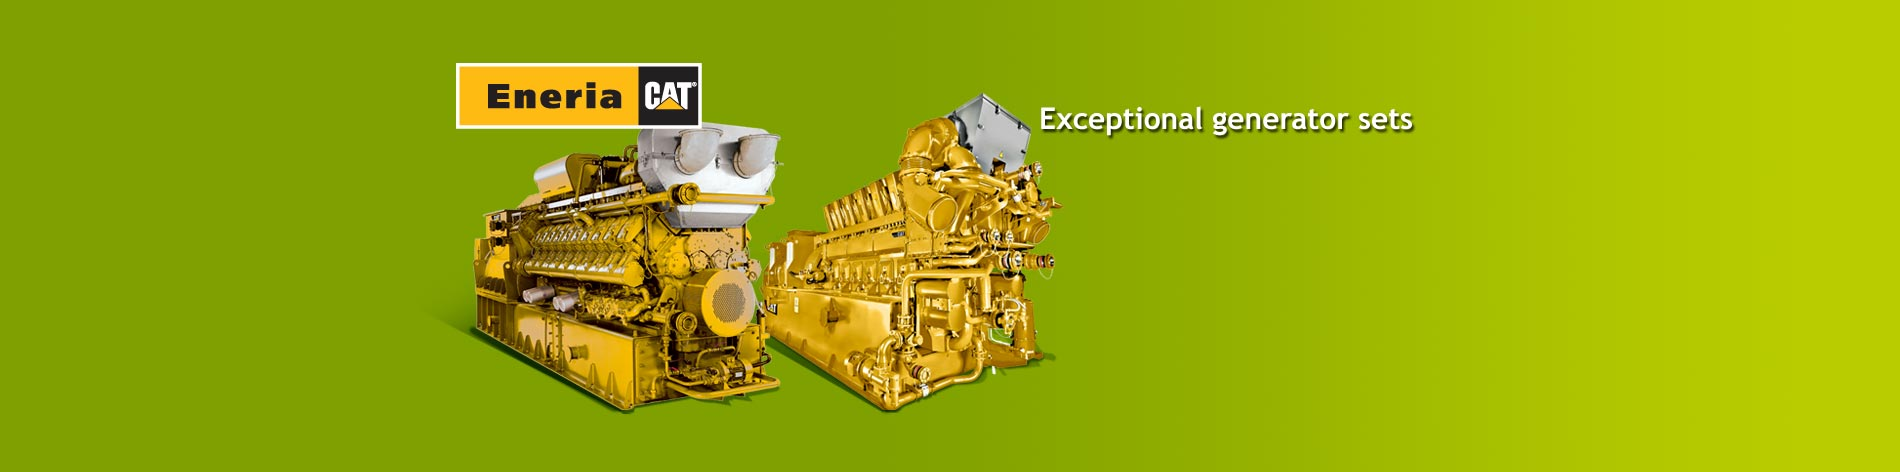 We offer a complete line of gas generator sets adapted for any type of gas with outputs from 130 kWe to 4,300 kWe.